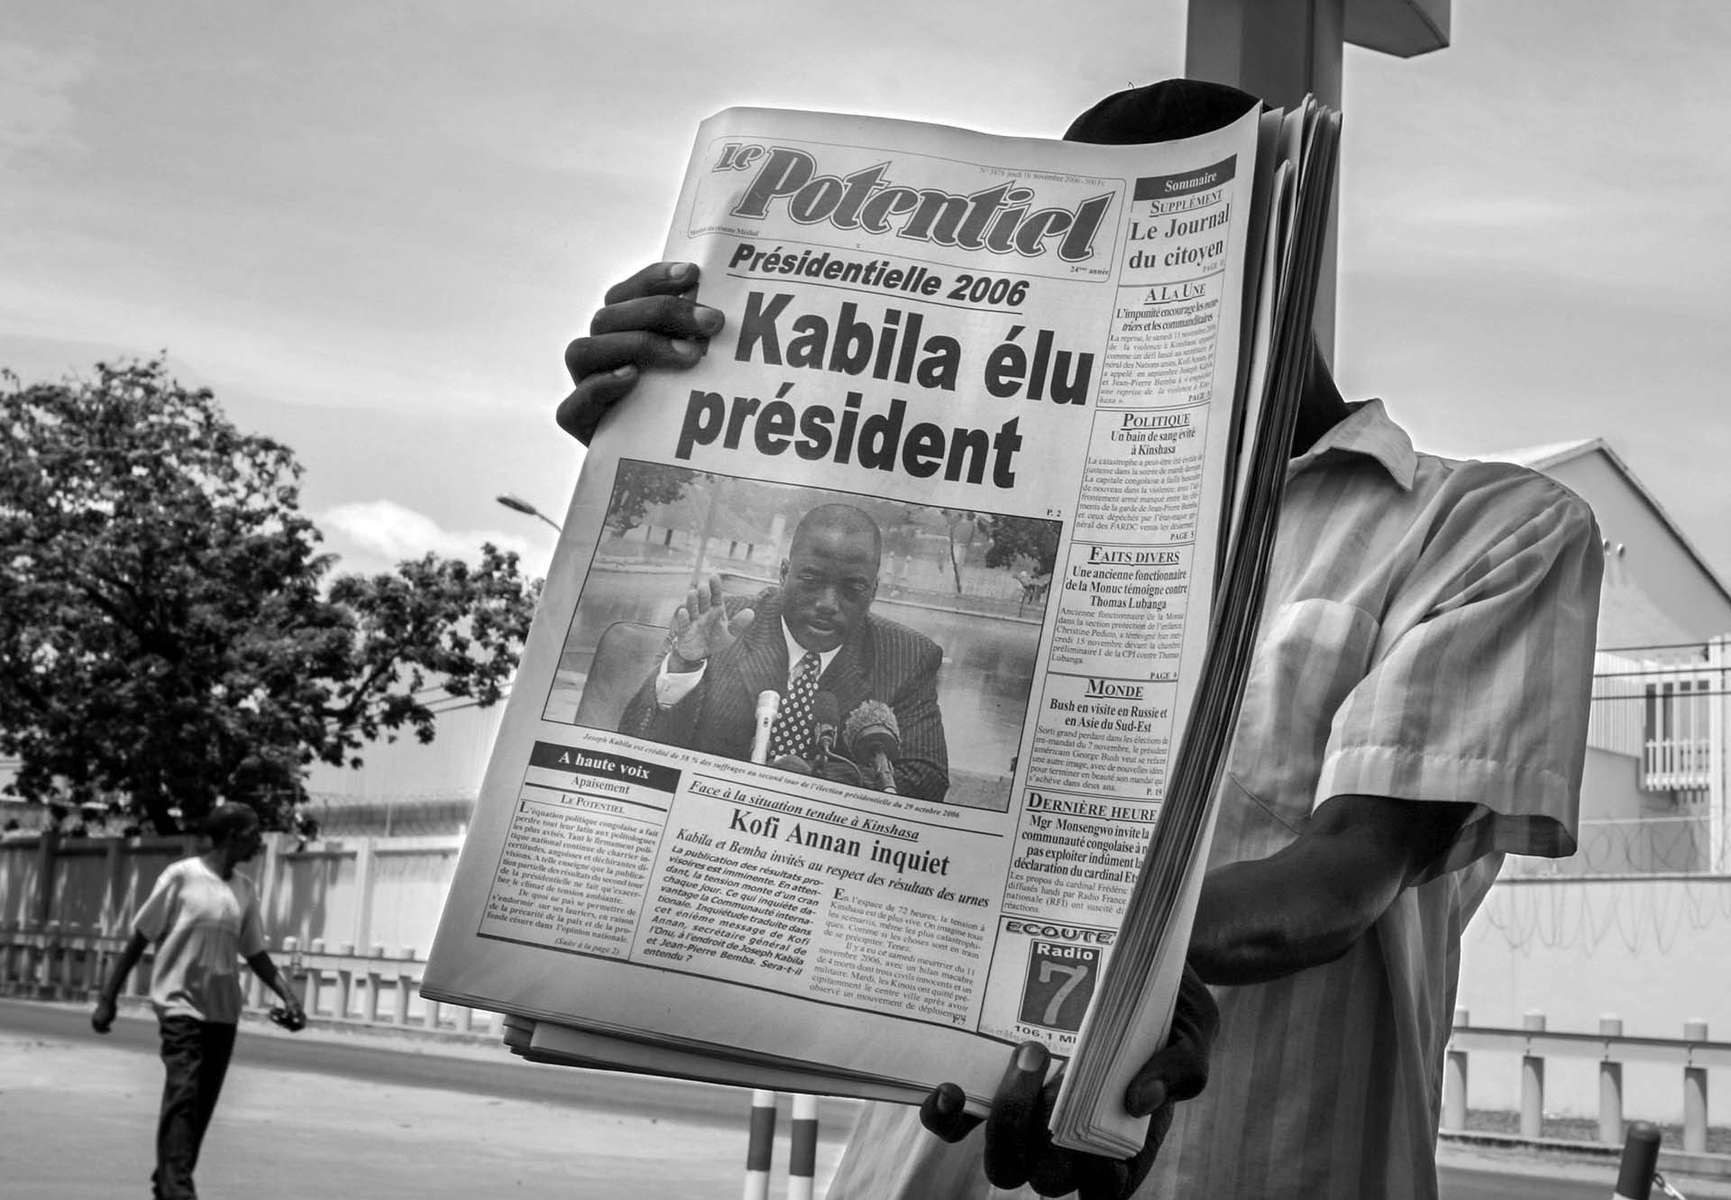 Joseph Kabila was announced as a winner of the presidential election 15 Novemver 2006.